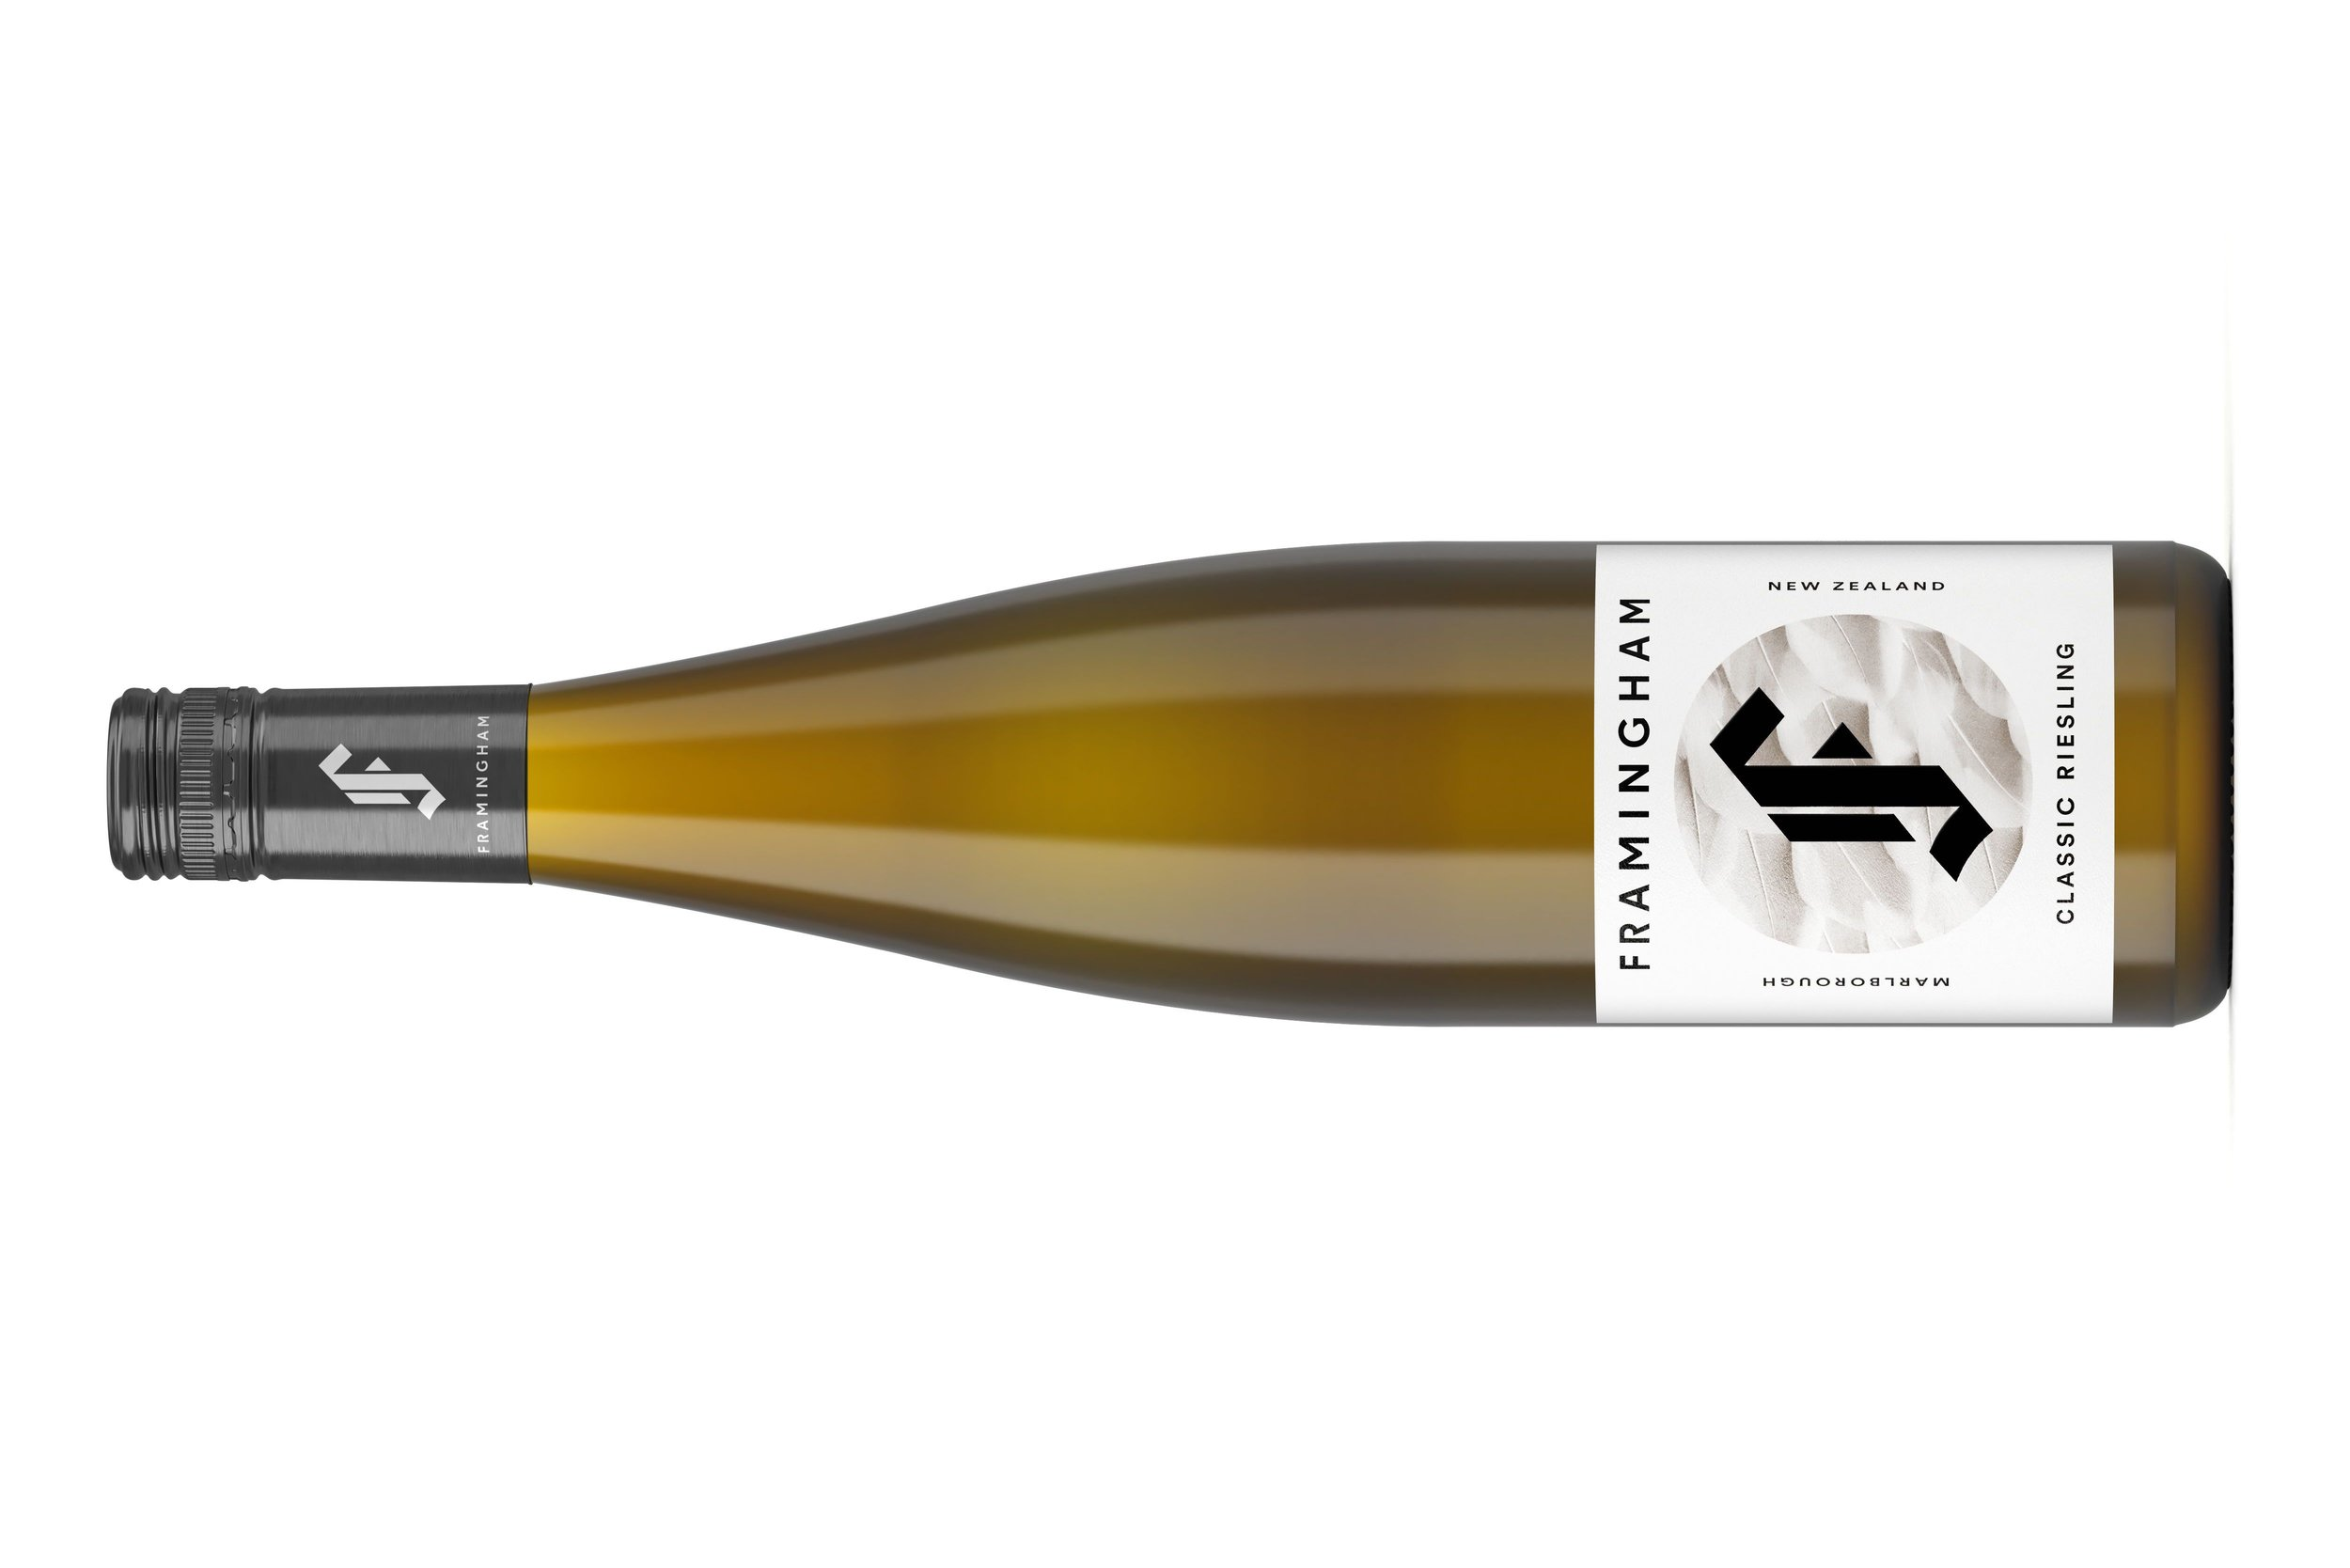 FRAMINGHAM CLASSIC RIESLING | フラミンガム クラシック リースリング  マールボロ ワイラウヴァレー  ¥4,180 2017, 750ml , 12.5% , TA 7.7 g/l pH: 3.00, オーガニック  James Suckling 91 points  スパイス、石、レモンから黄桃まで、香り・味わいにたくさんのフレーヴァーがあります。 やさしくオフドライなフィニッシュへ完璧につながっていきます。飲み頃です。スクリューキャップ。  From spices, stones and lemons through to yellow peaches, there's lots to offer on the nose and palate. The gently off-dry finish suits perfectly.  TECHNICAL  Hand Picked, wild ferment, 100% whole bunch, onlees for 8 month, filtration yes, fining no, minimal additions